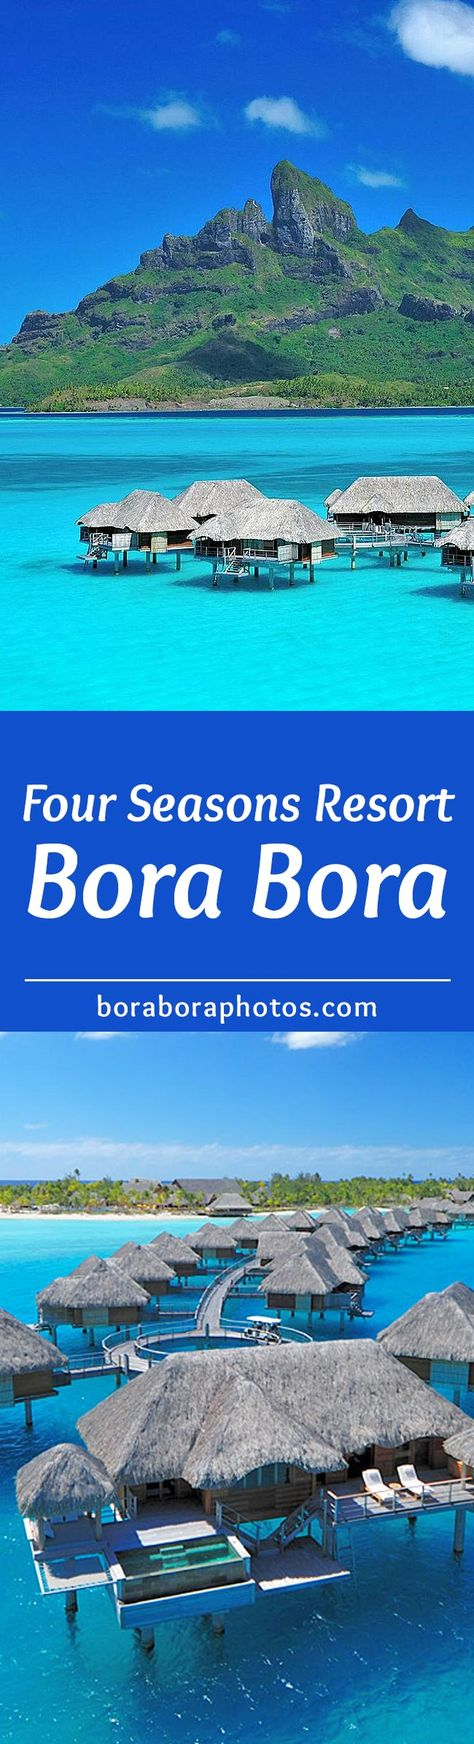 Four Seasons Resort - A pristine paradise complete with stunning views of the South Pacific island of Bora Bora. A luxury resort with overwater bungalows.